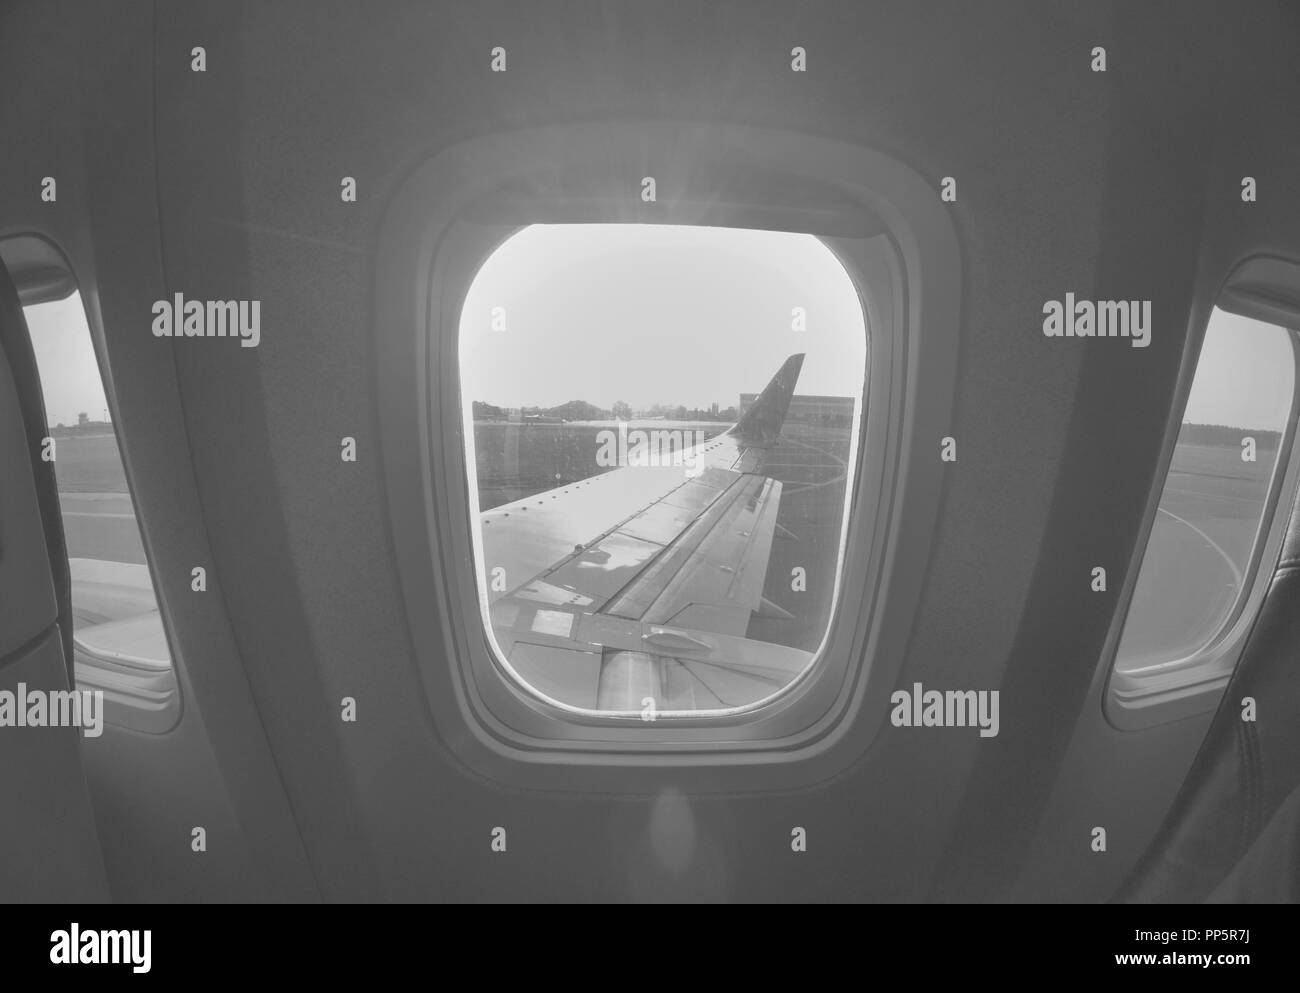 Aiplane Aircraft windows view on the wing aircraft, airlines , aviation skyline transportation - Stock Image